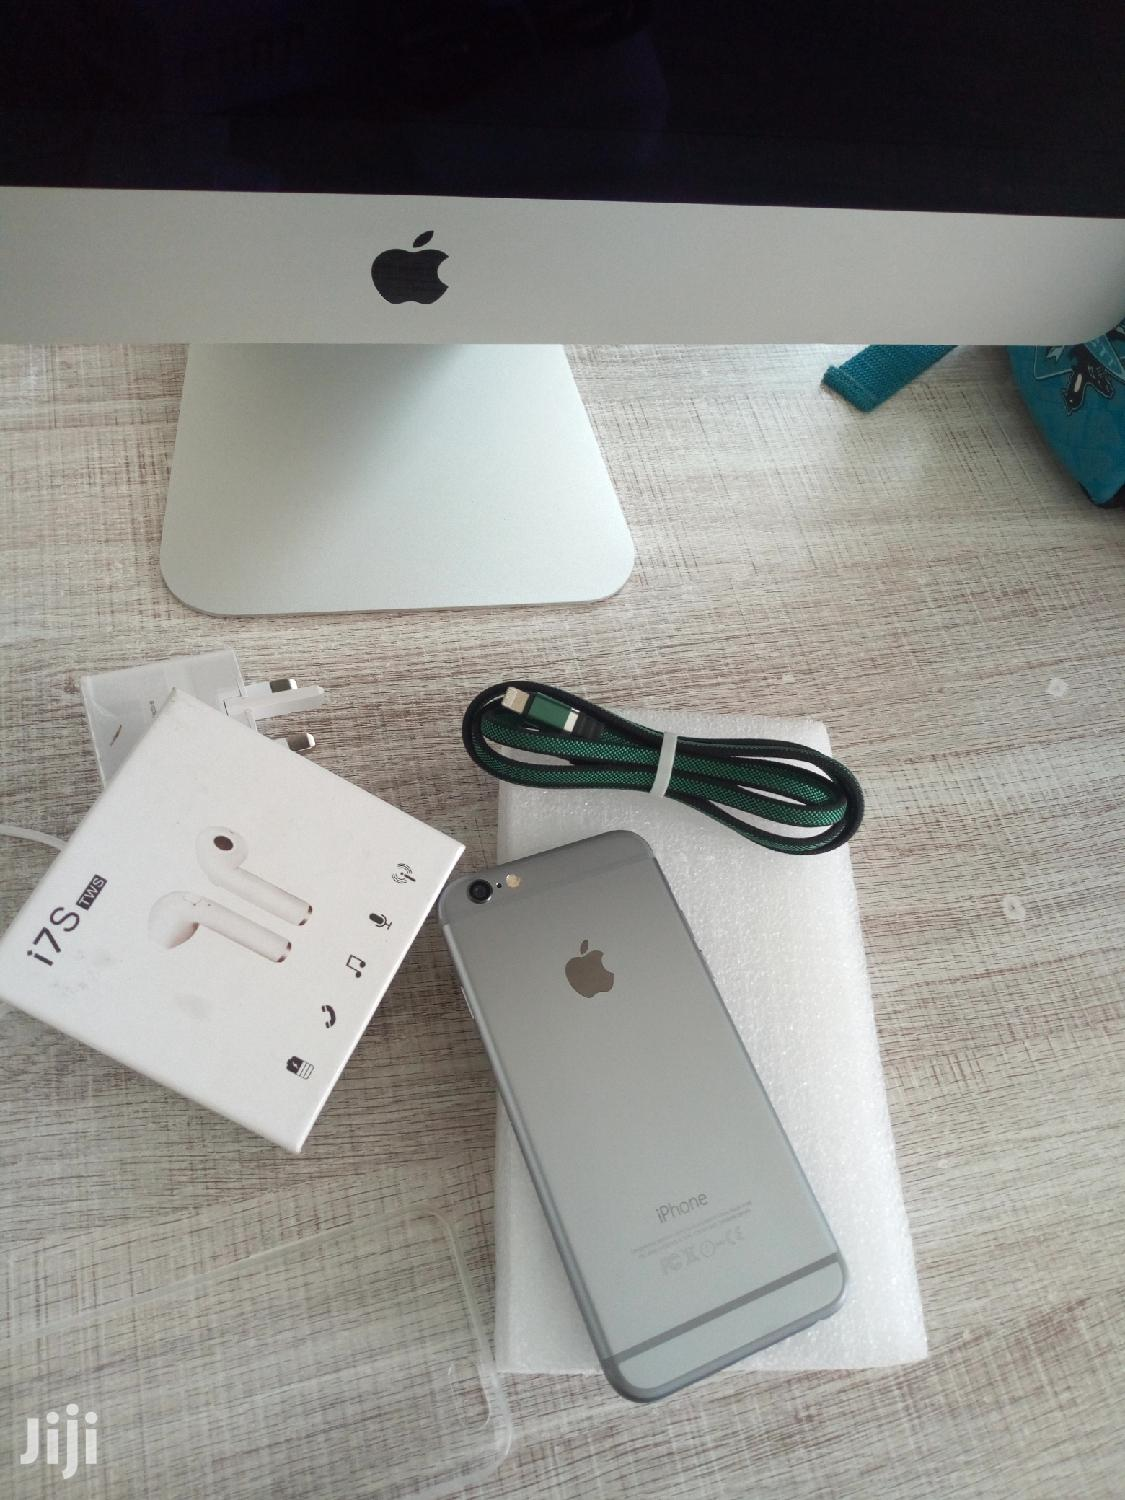 New Apple iPhone 6 64 GB Silver | Mobile Phones for sale in Tudor, Mombasa, Kenya